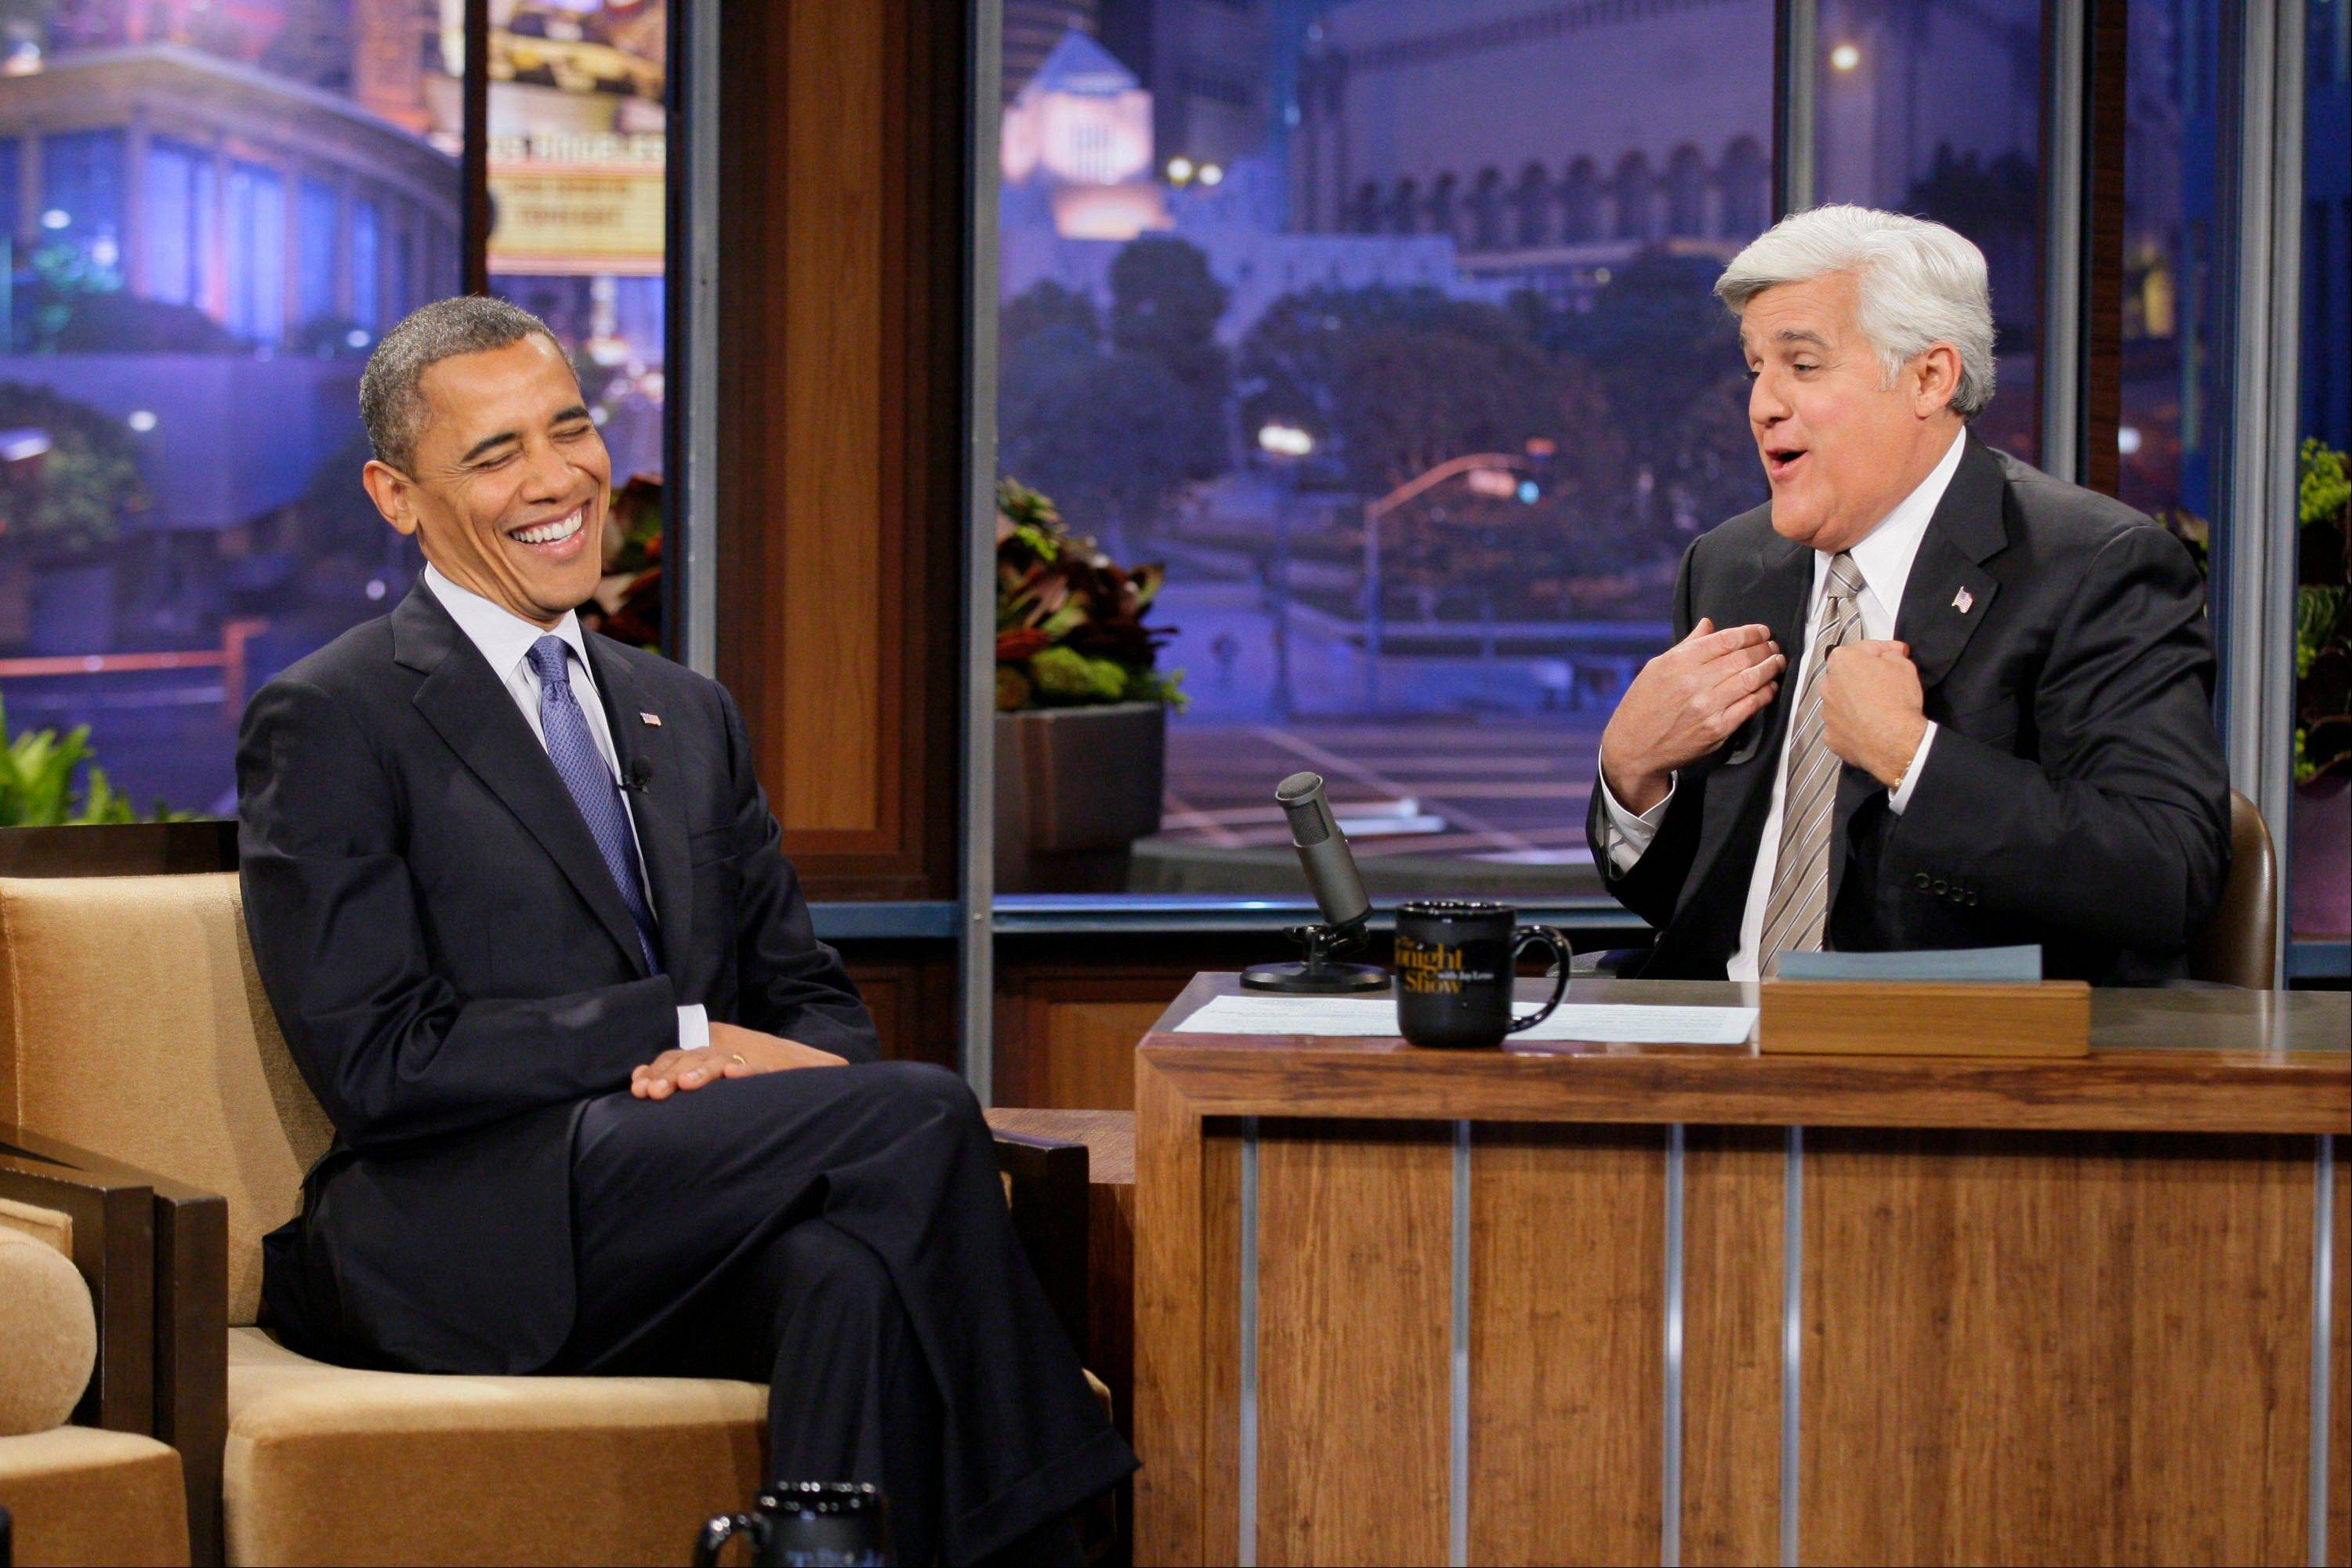 Jay Leno interviewed Barack Obama in 2009, which was the first interview with a sitting president, on �The Tonight Show With Jay Leno.�